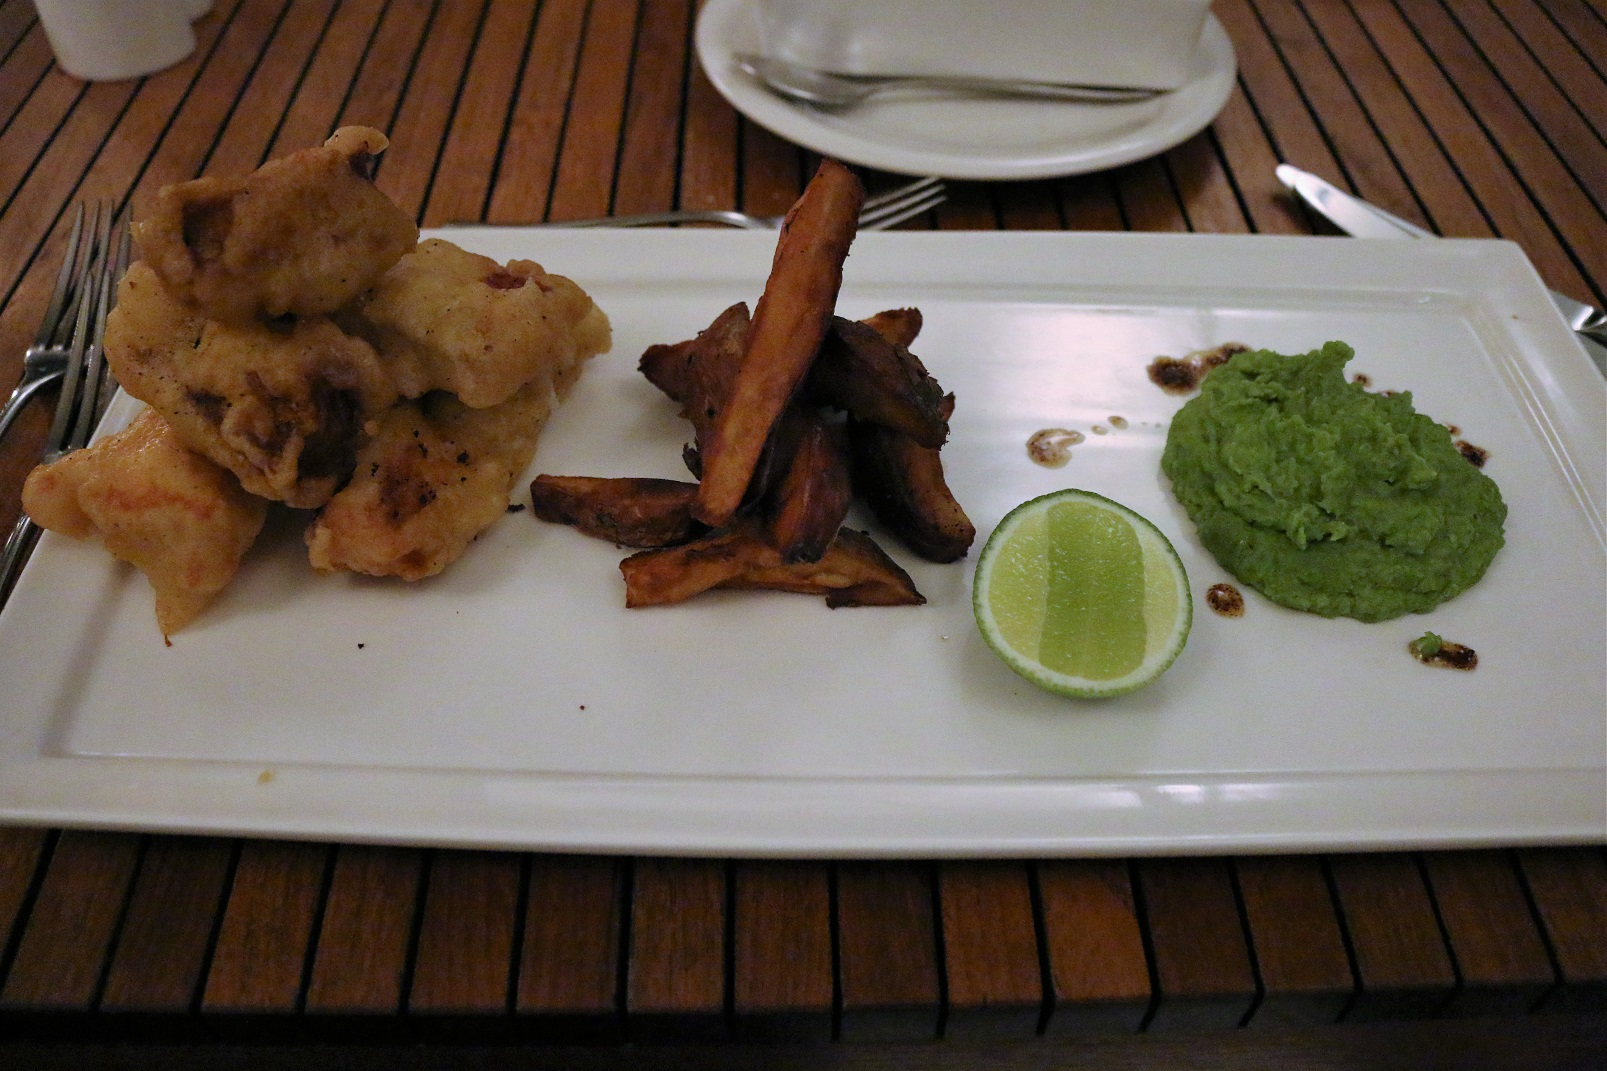 Boucan Hotel Chocolat St Lucia fish and chips mushy peas